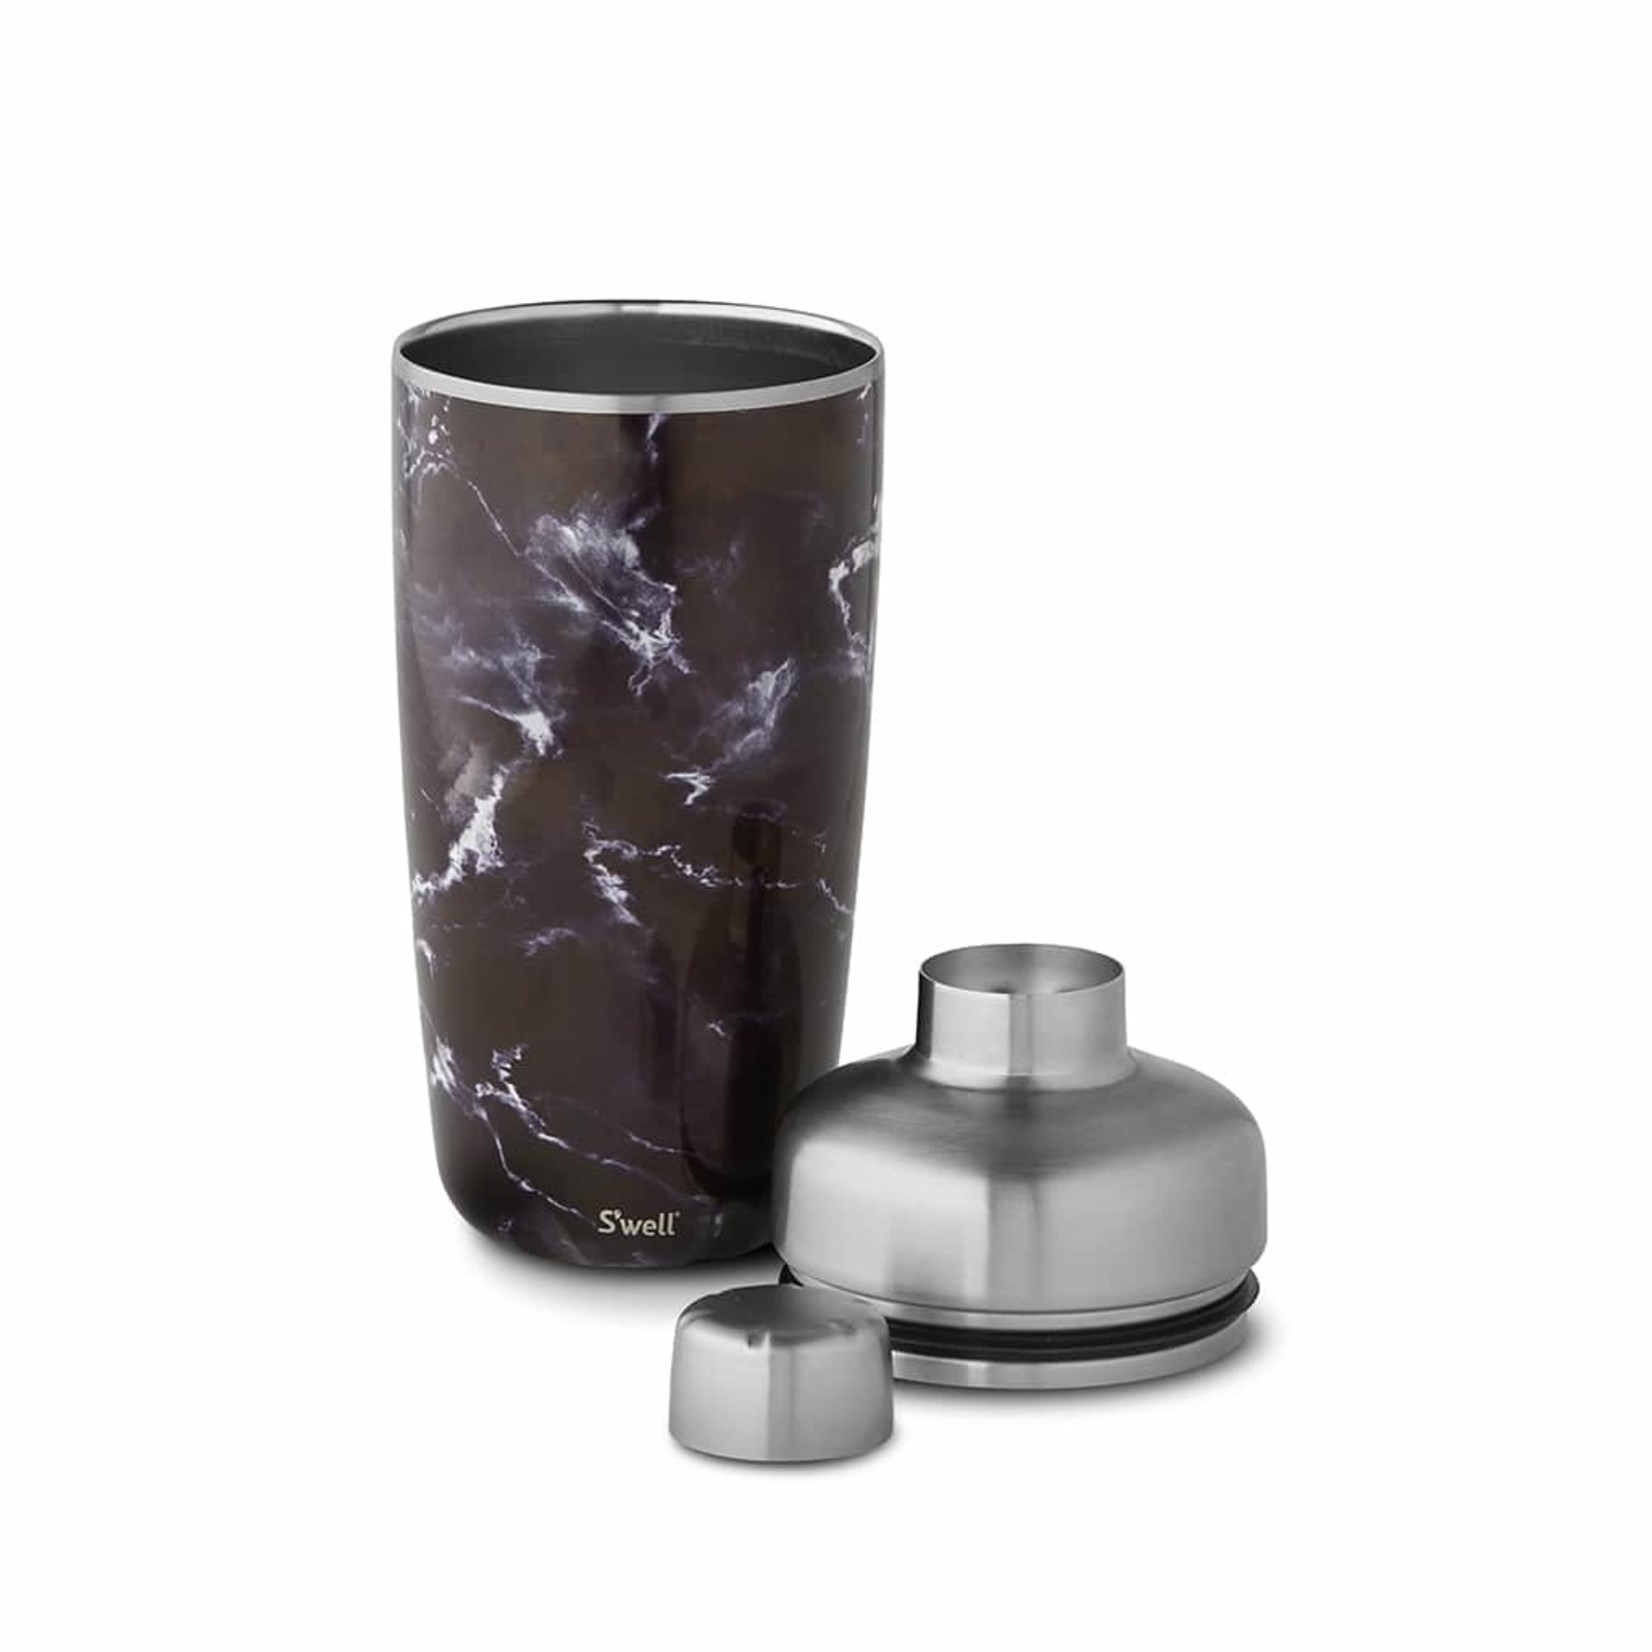 S'well S'well 18oz Shaker Set with Jigger Black Marble